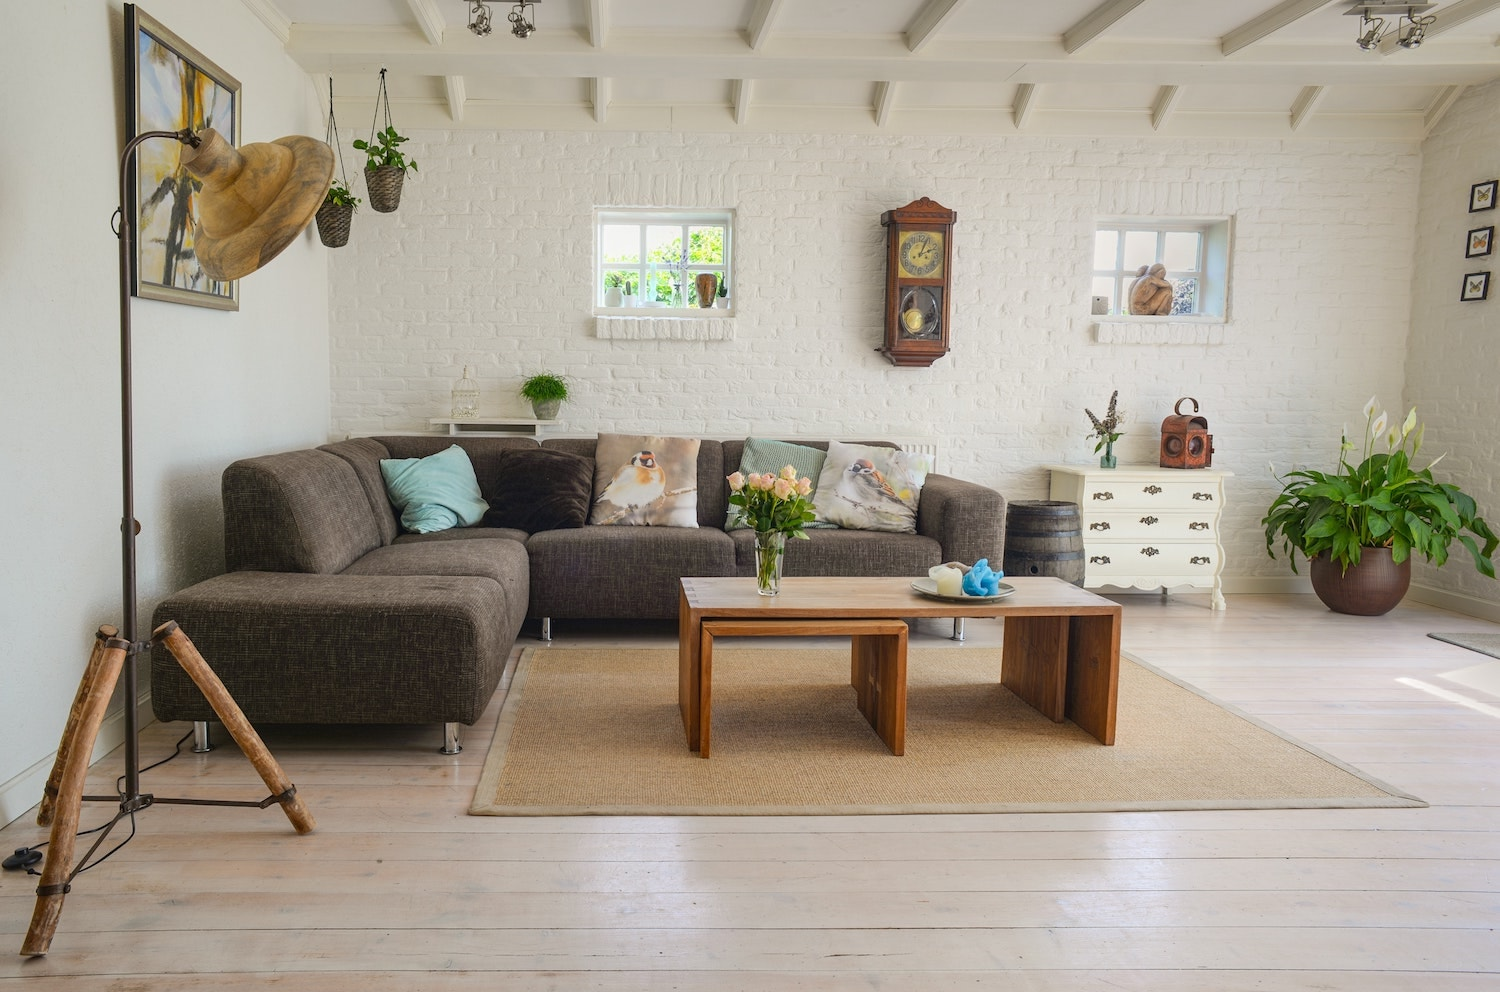 Brown sofa in a living room with wooden table